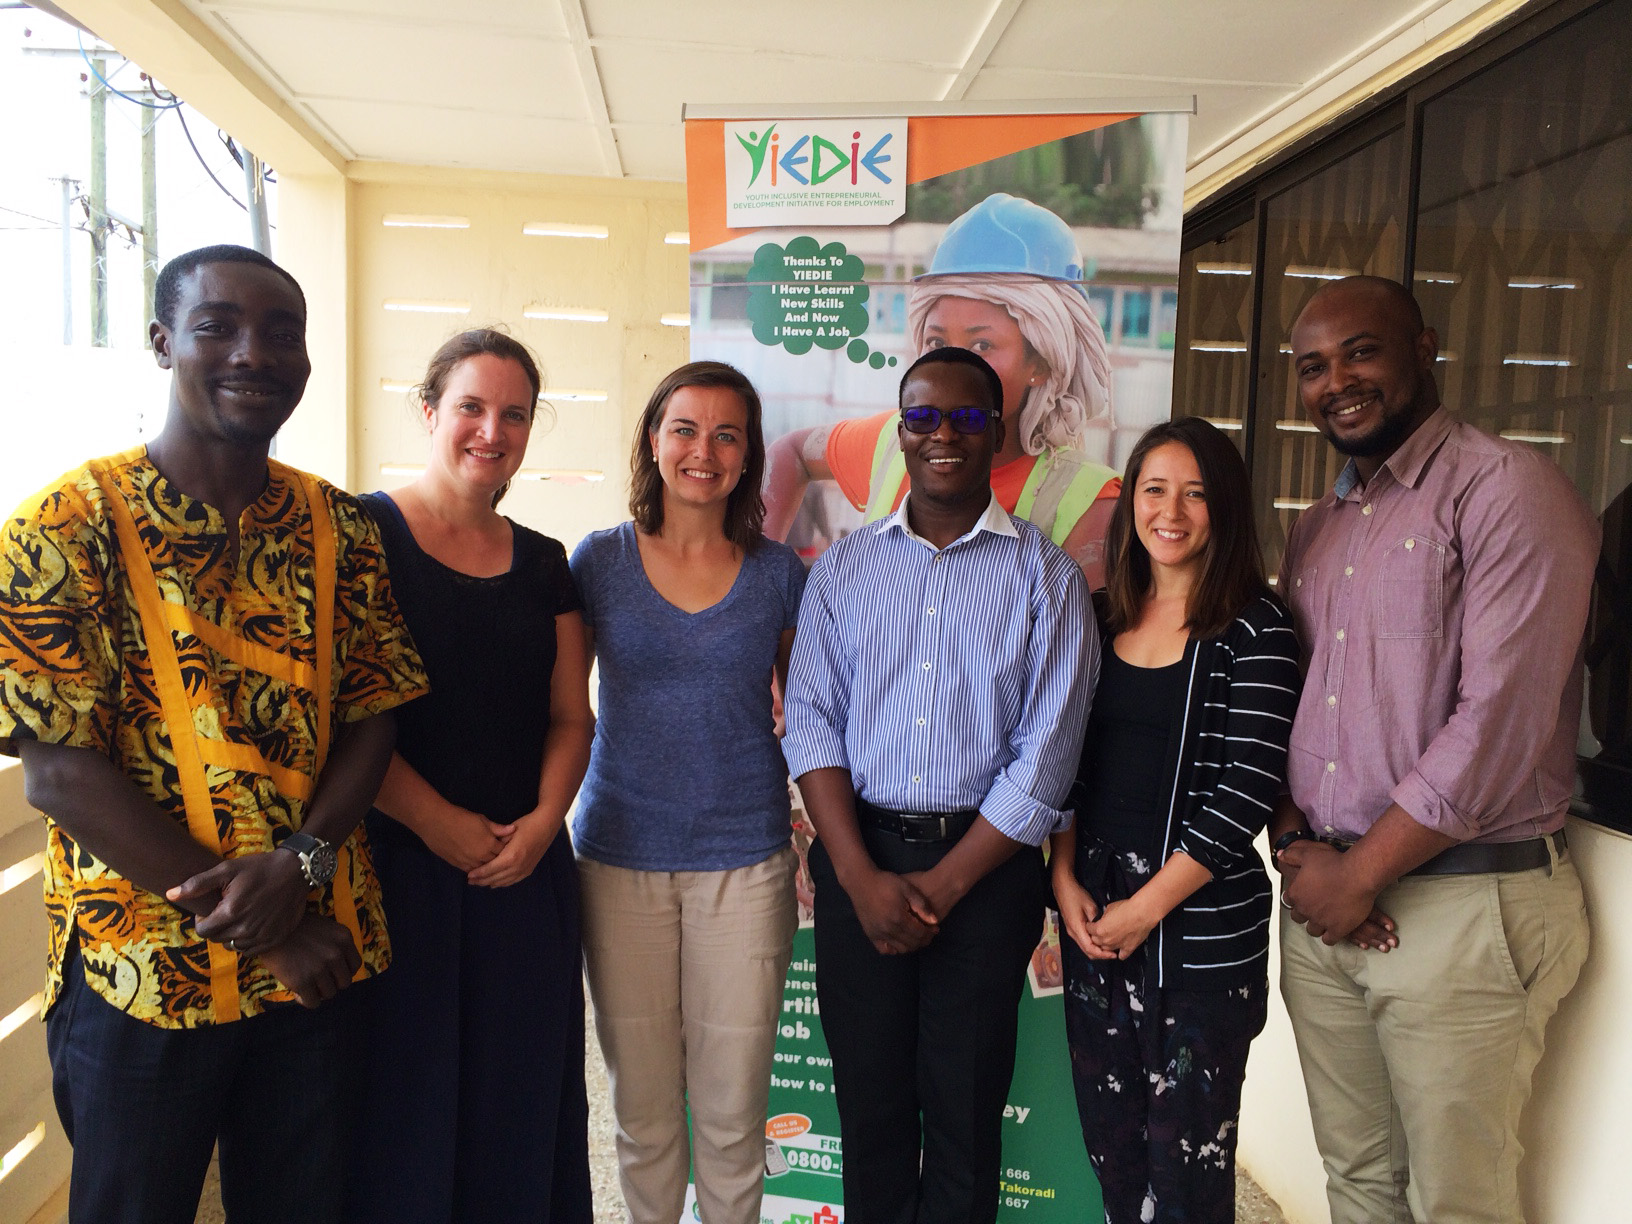 Our meeting with YES-Ghana. Left to Right, James Anquandah, Sophie Danner, Emily Rasinski, Emmanuel Edudzie, Sheena Lahren, and Emmanuel Nomafo.